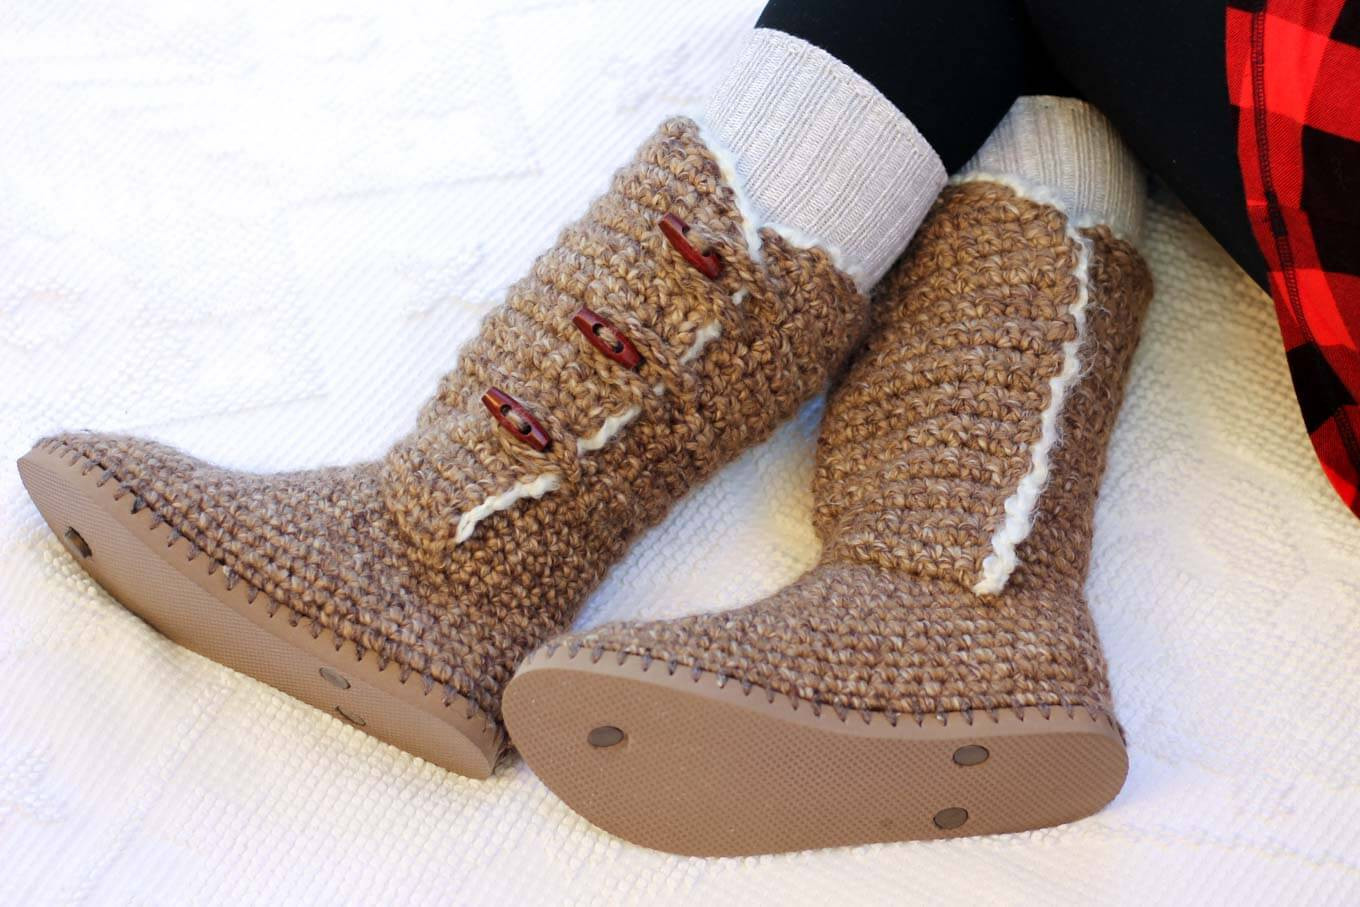 Crochet Boots Inspirational Ugg Style Crochet Boots with Flip Flop soles Free Of Brilliant 43 Photos Crochet Boots